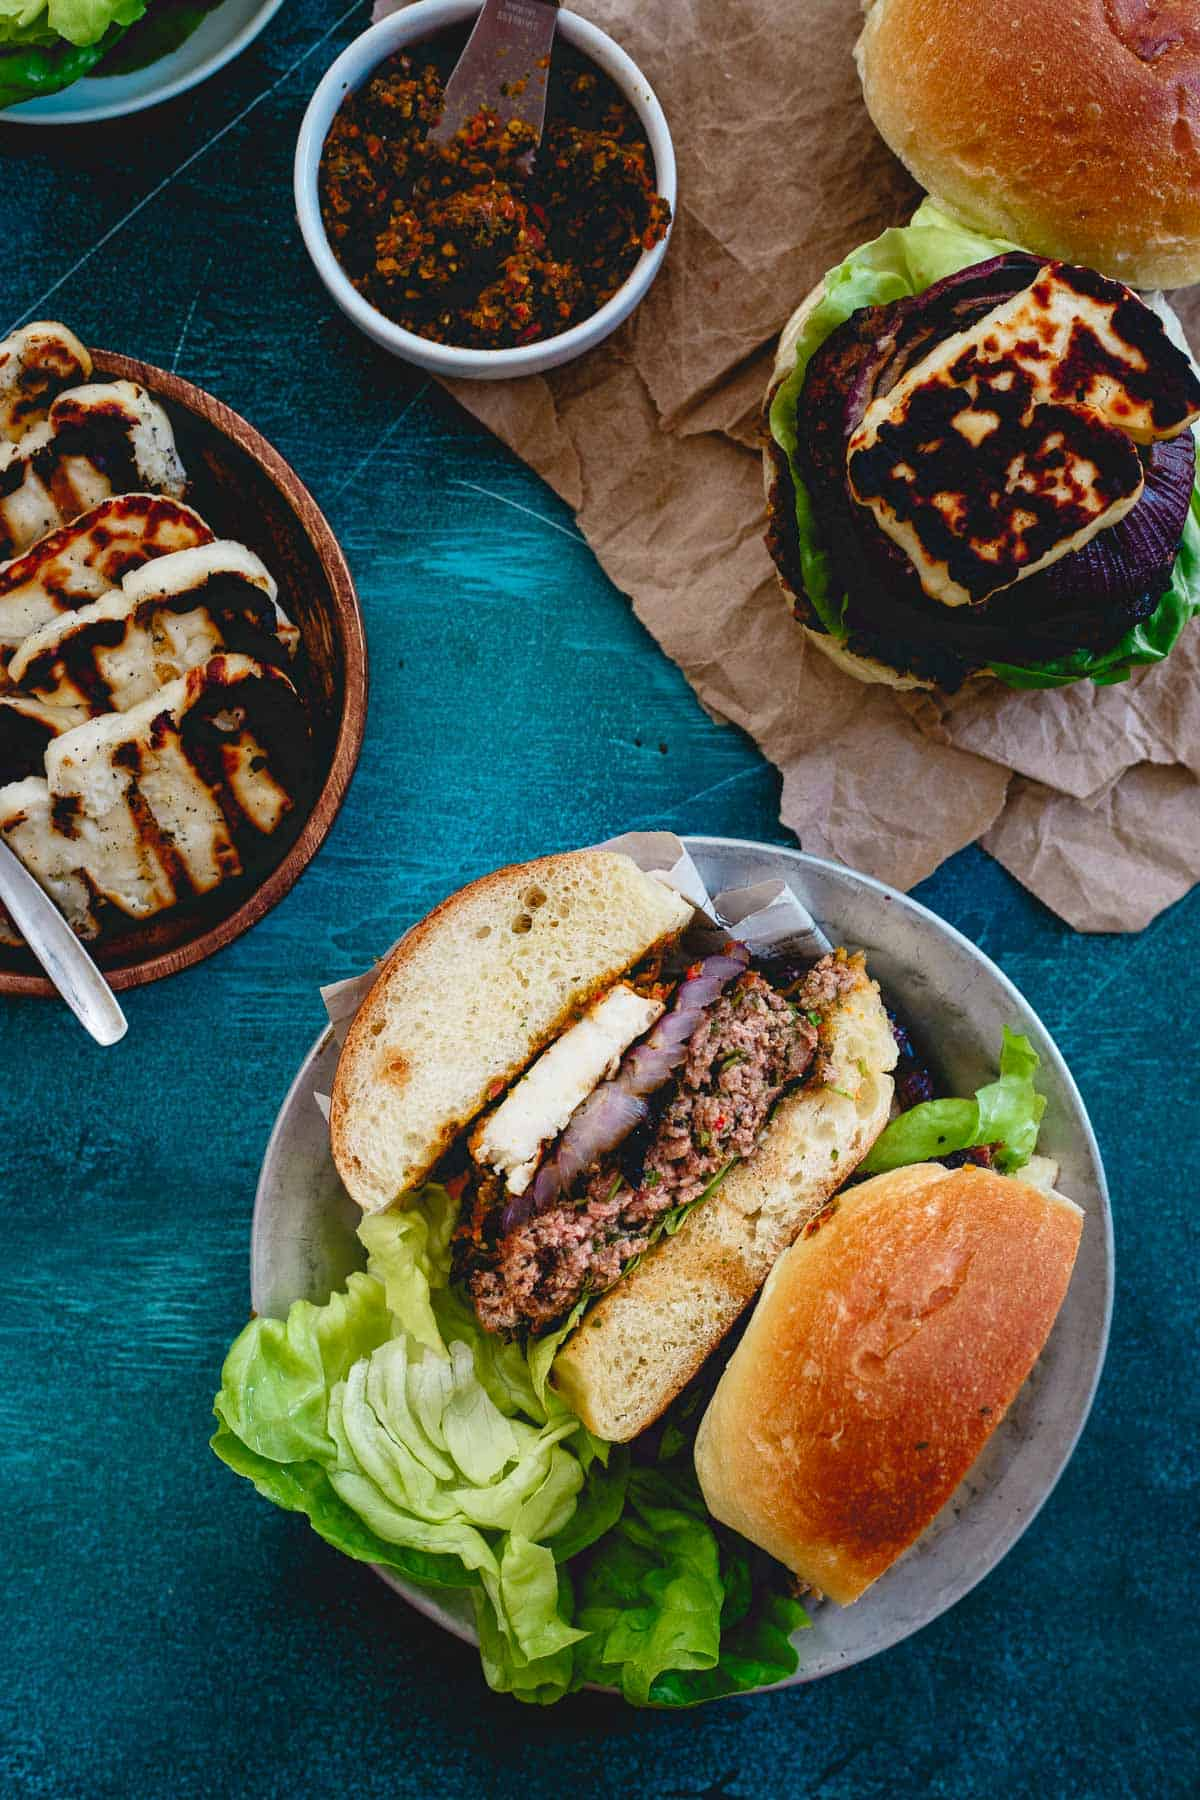 These lamb burgers are packed with fresh herbs, grilled red onions, a Mediterranean sun-dried tomato pesto spread for a nice change of pace to your summer burger.